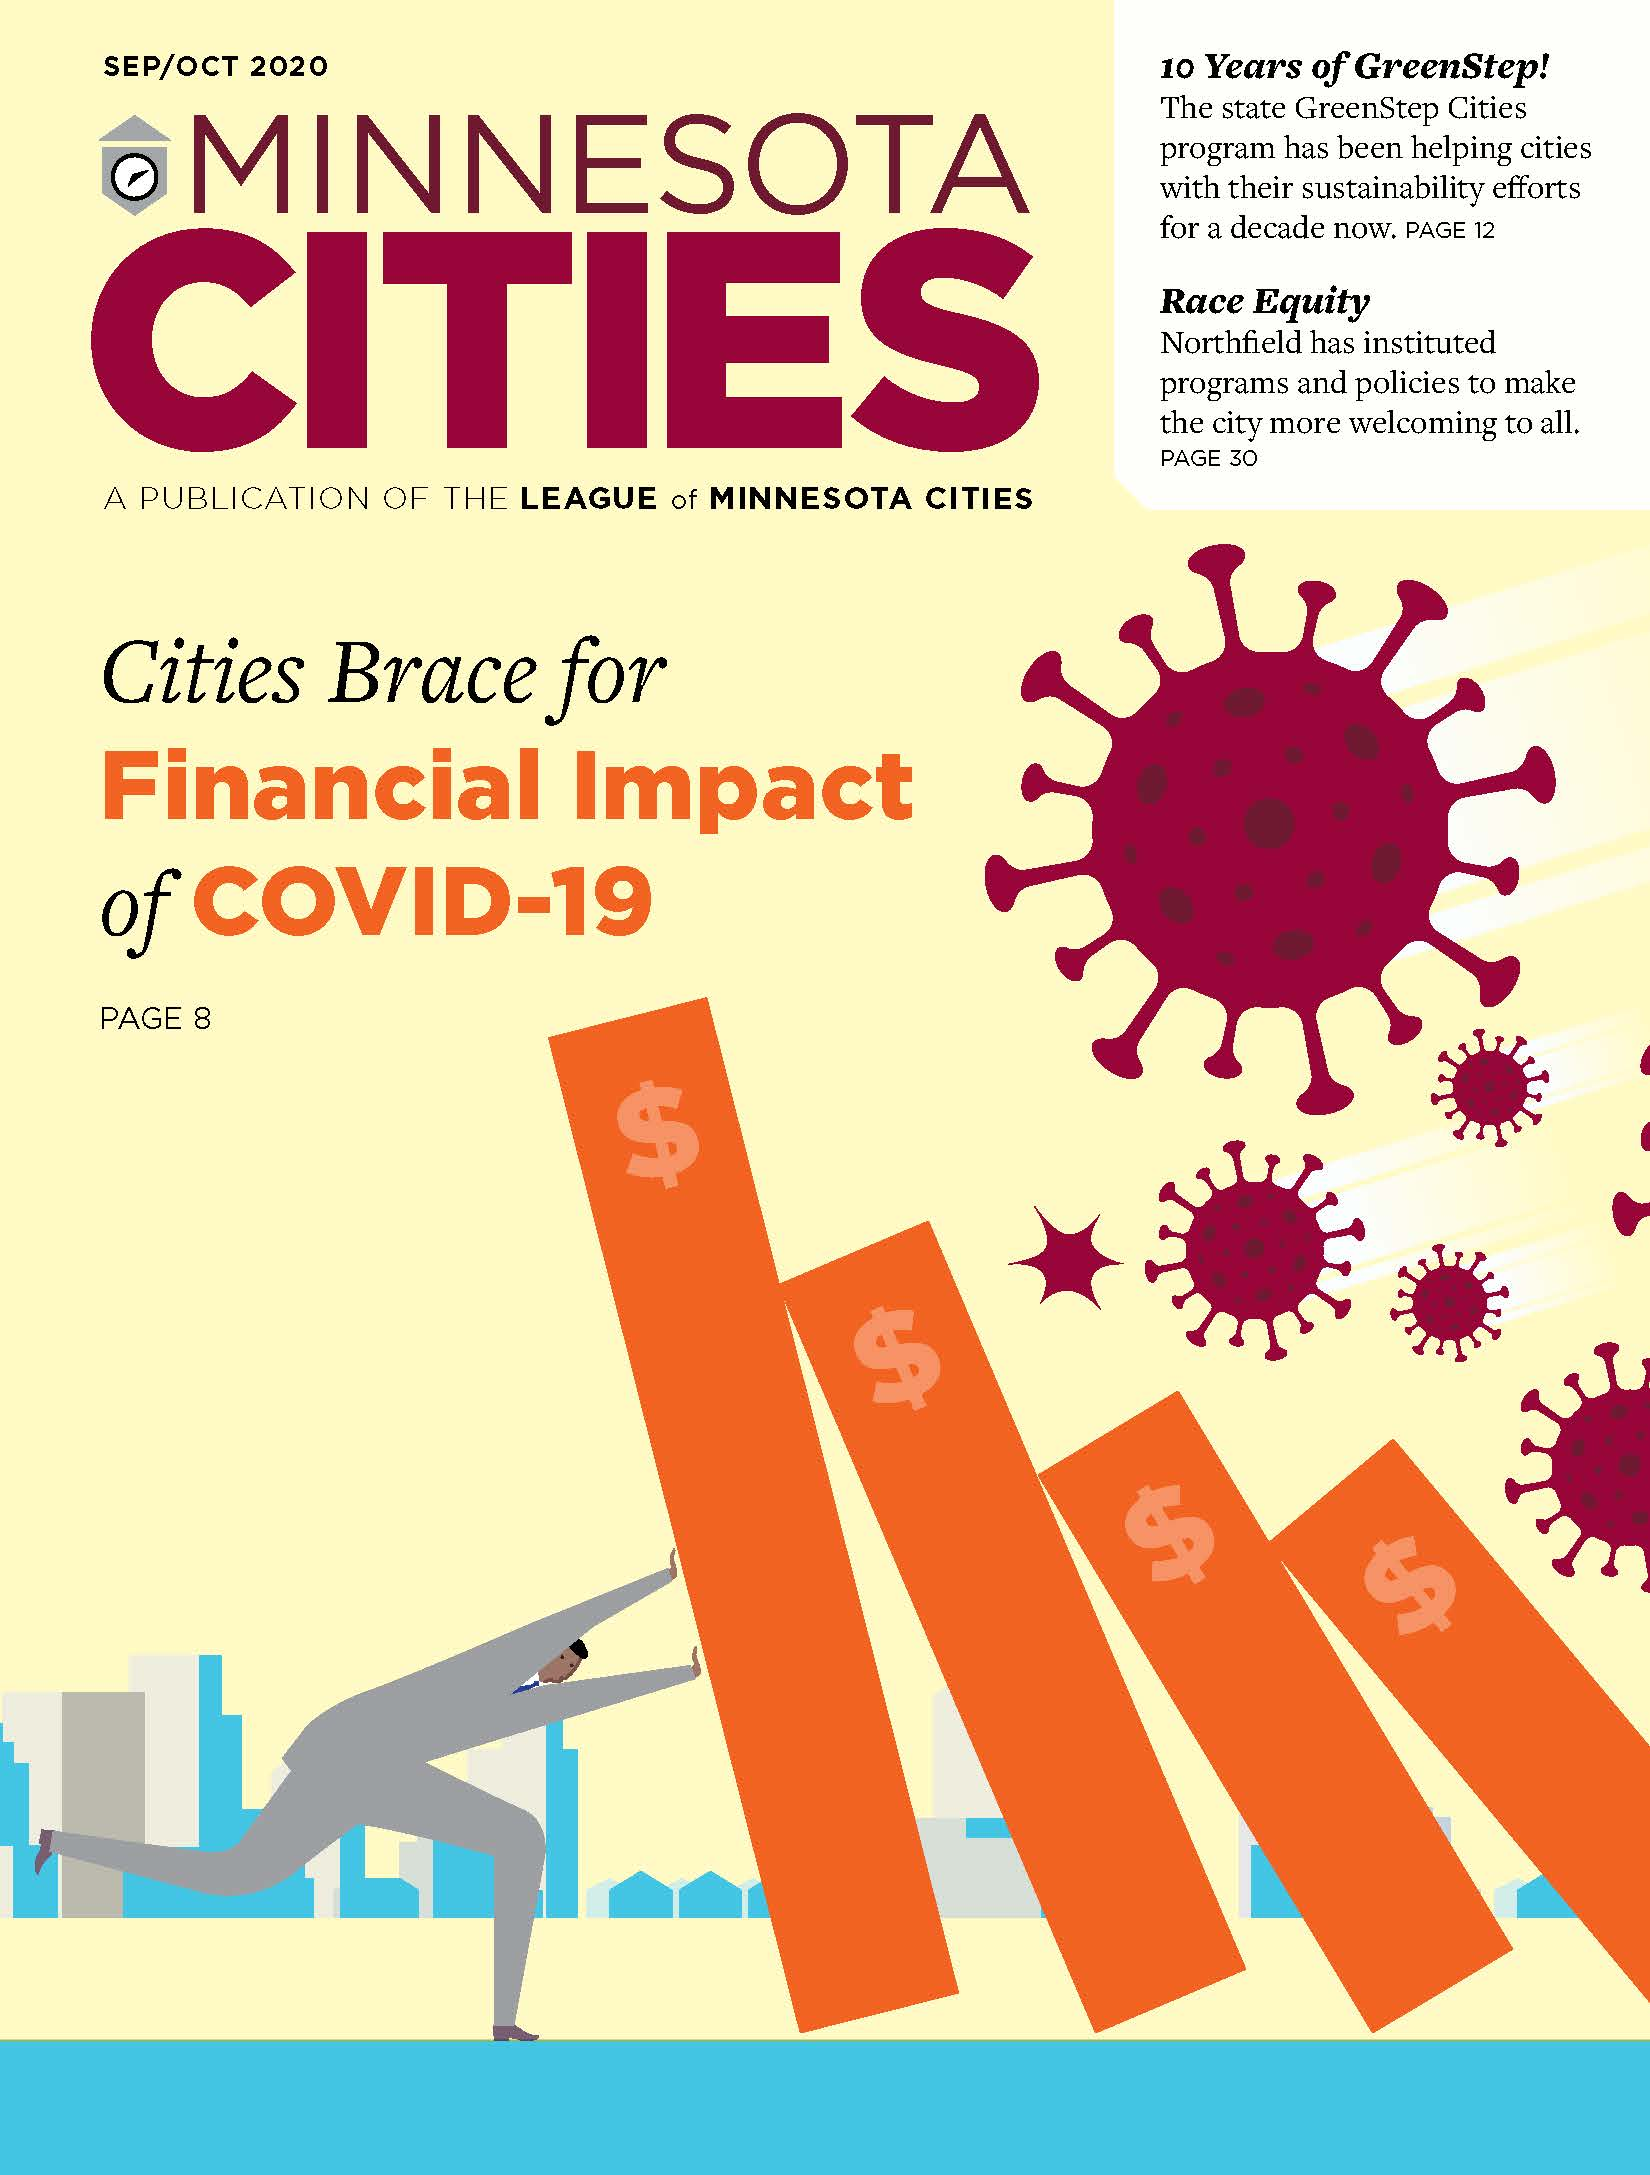 Cover of Sep-Oct 2020 issue of Minnesota Cities magazine with illustration of a man holding up a financial bar graph, fighting against the effects of COVID-19. Text says: Cities Brace for Financial Impact of COVID-19.